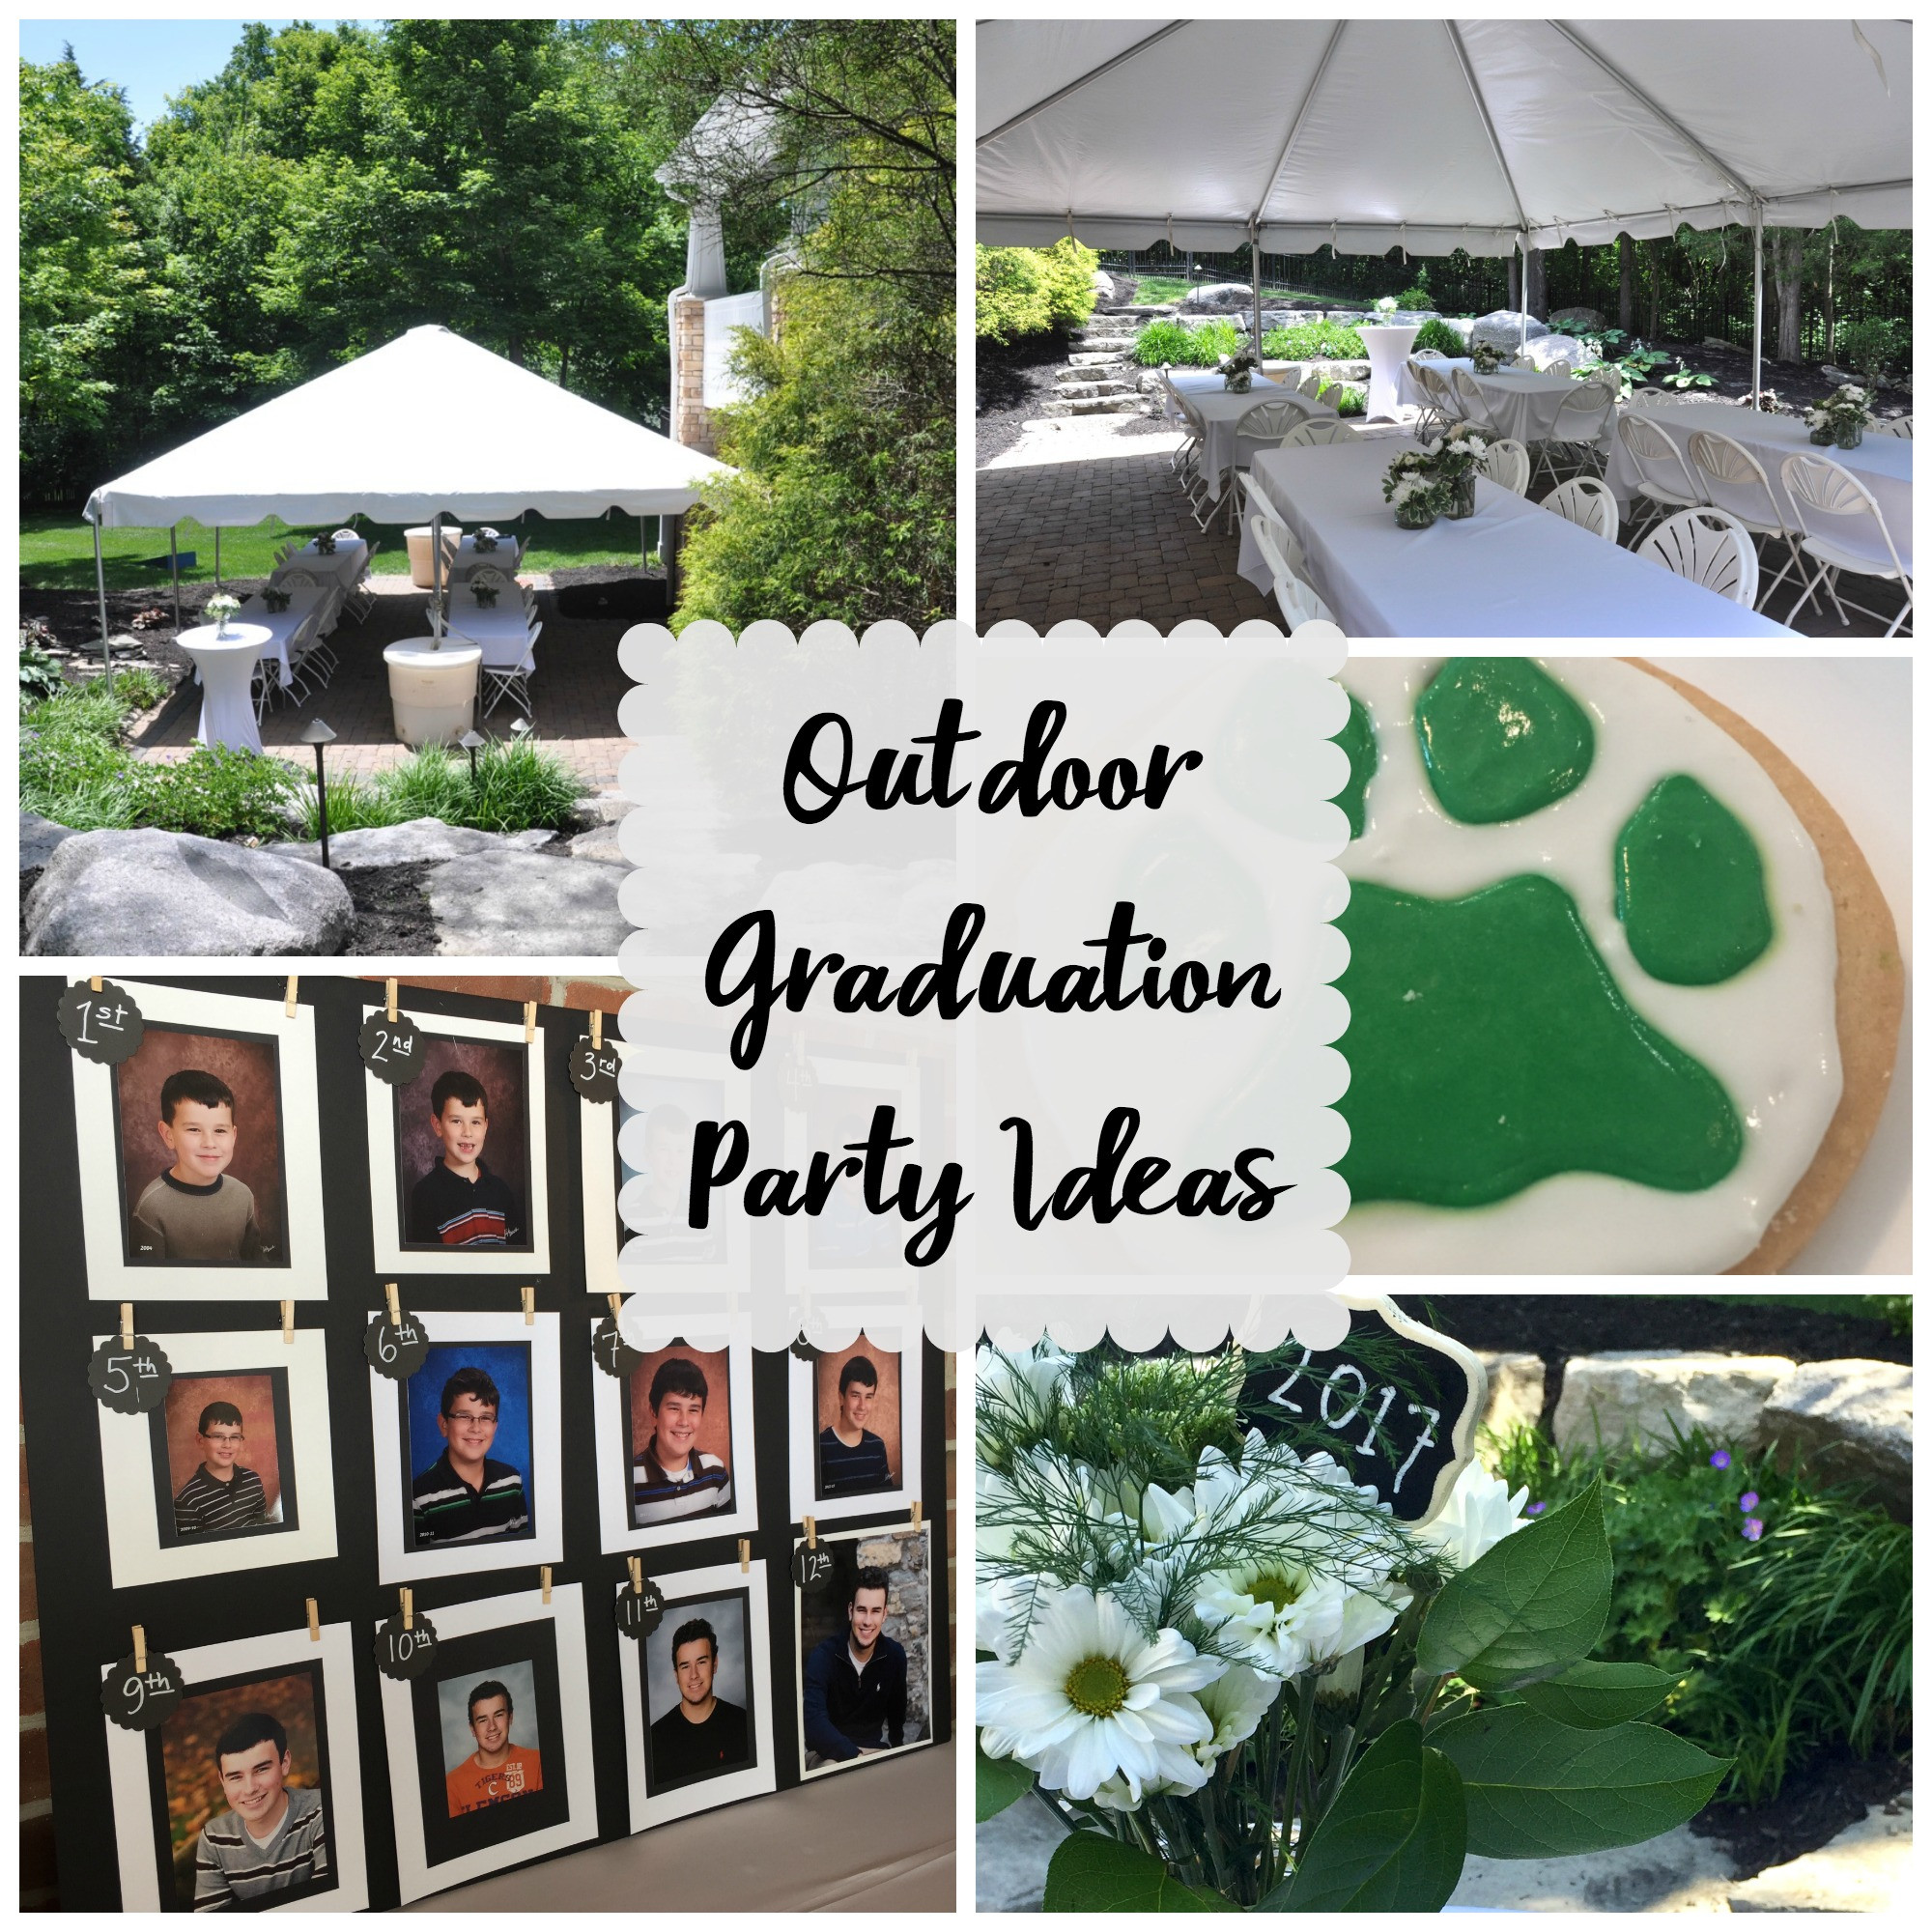 Outside Graduation Party Ideas  Outdoor Graduation Party Evolution of Style